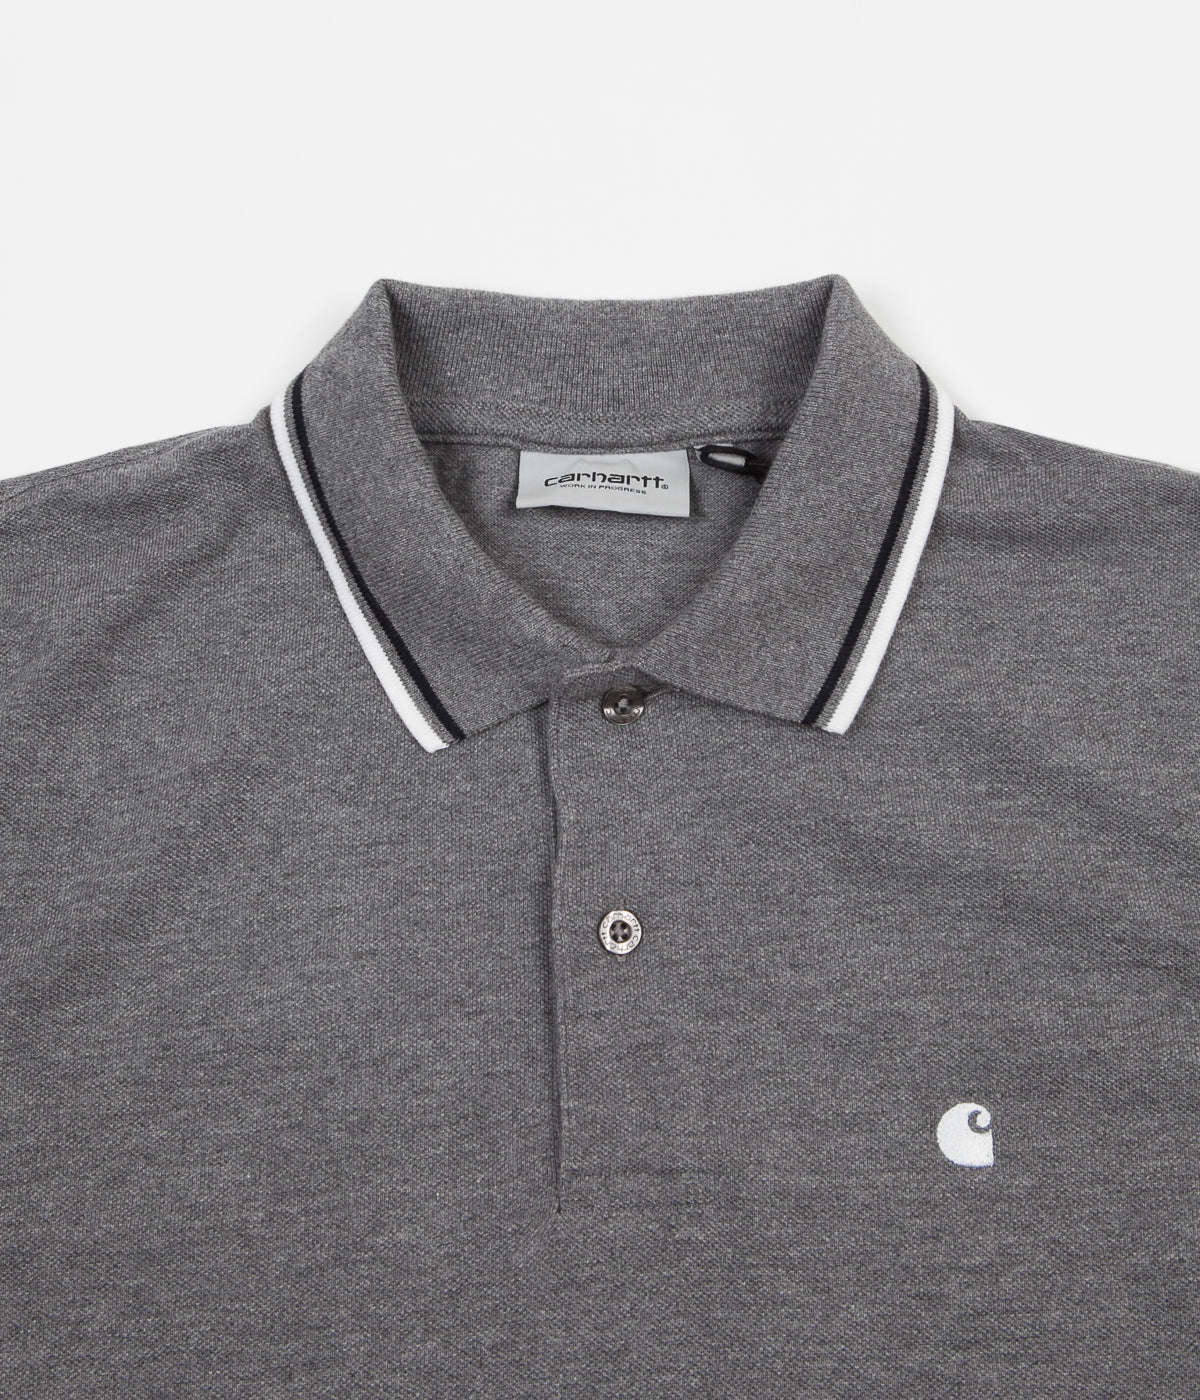 269e48fb Carhartt Venice Polo Shirt - Dark Grey Heather / Dark Navy | Flatspot